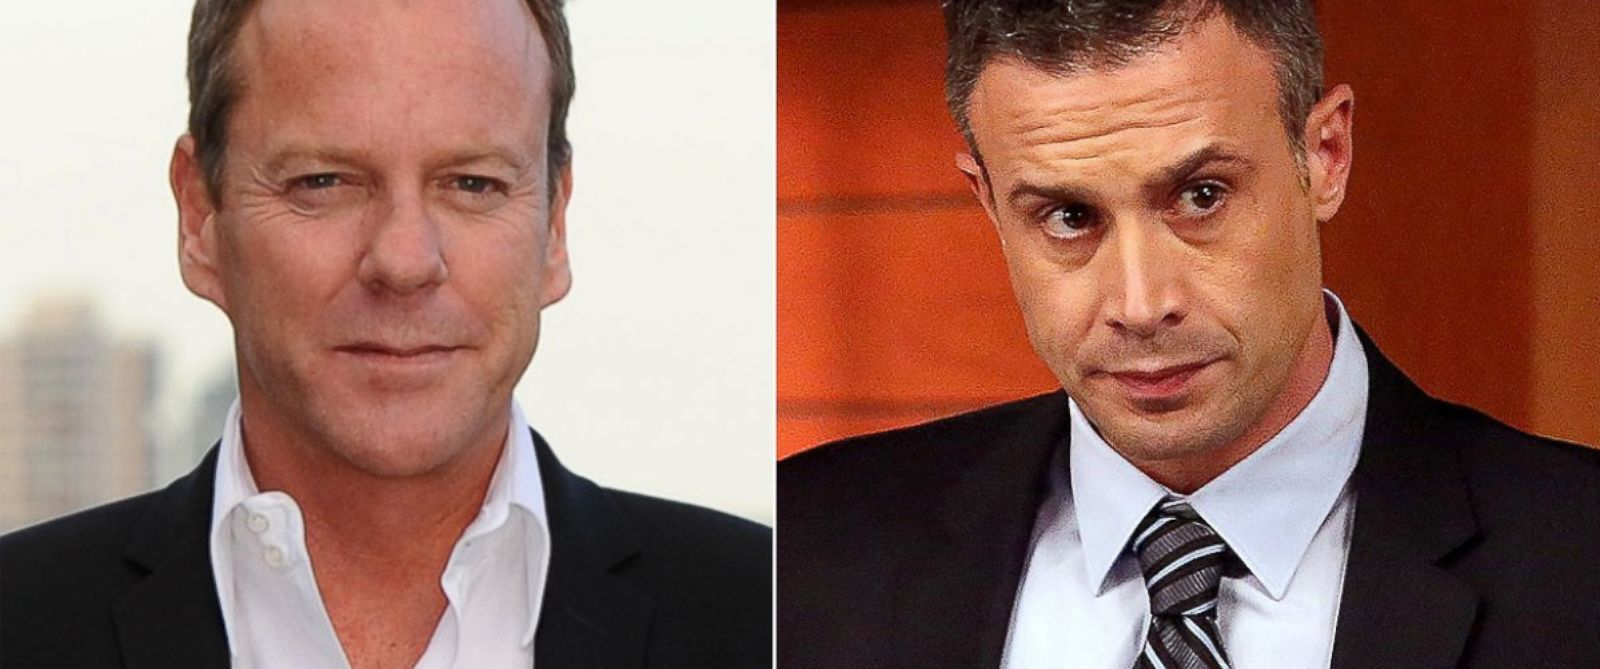 """PHOTO: Kiefer Sutherland, left, is pictured on May 6, 2014 in London. Freddie Prinze, Jr., right, is pictured in a March 2014 episode of """"Bones."""""""